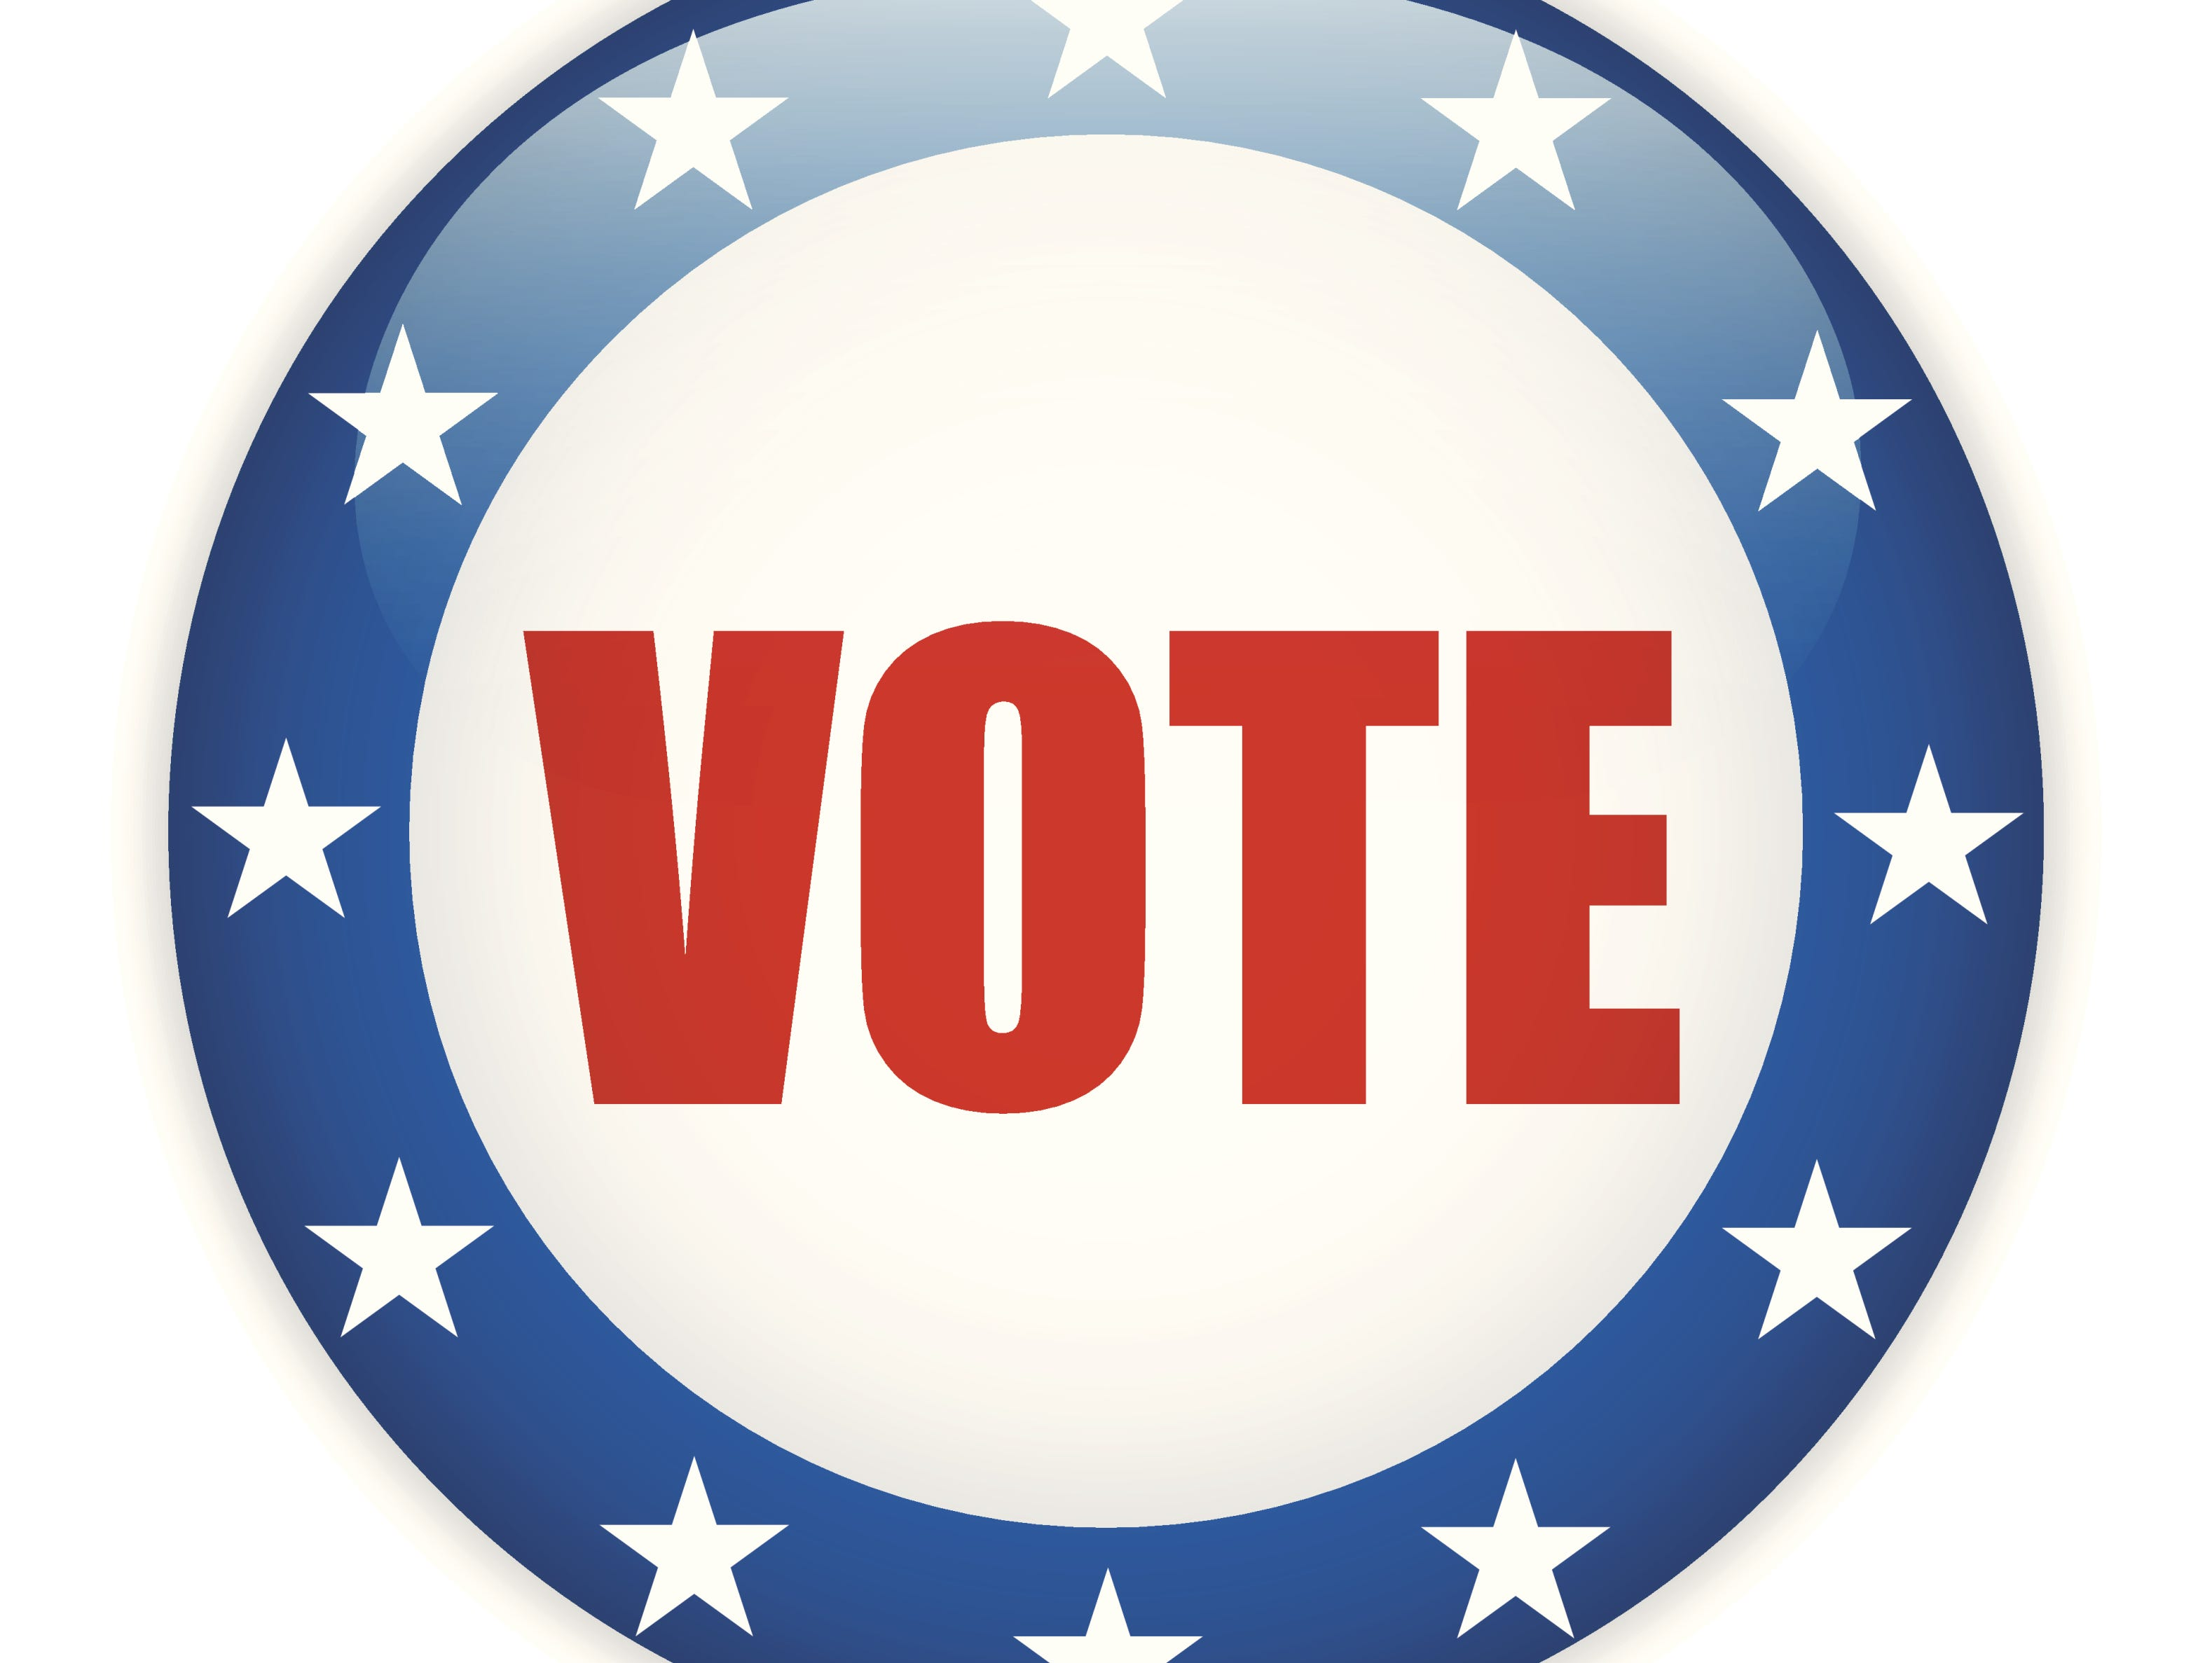 Greenville News is holding two forums for candidates in the Democratic and Republican runoff elections 6/20 & 6/21.